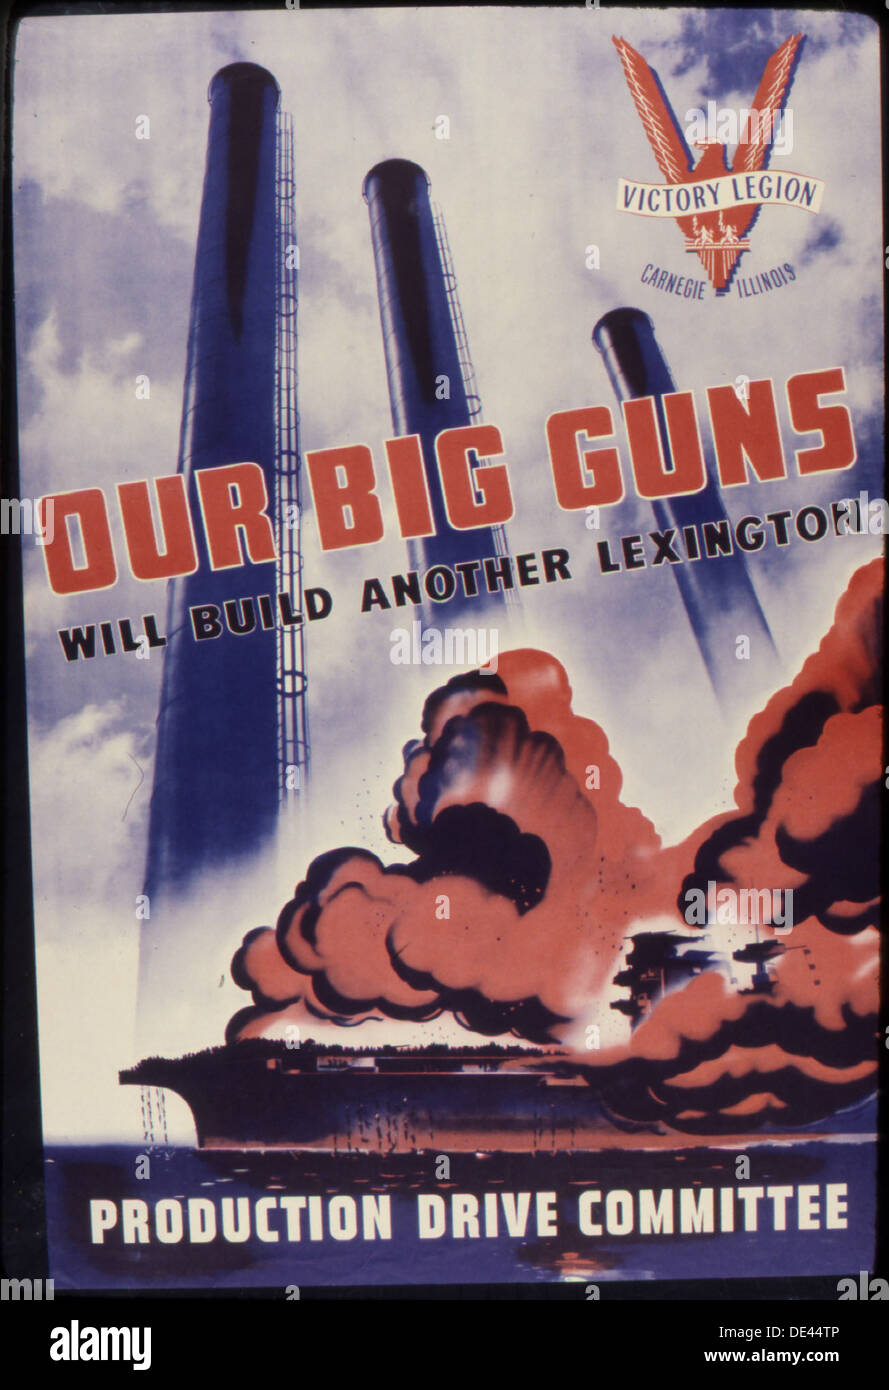 Our big guns will build another Lexington. Production Drive Committee. 534927 - Stock Image